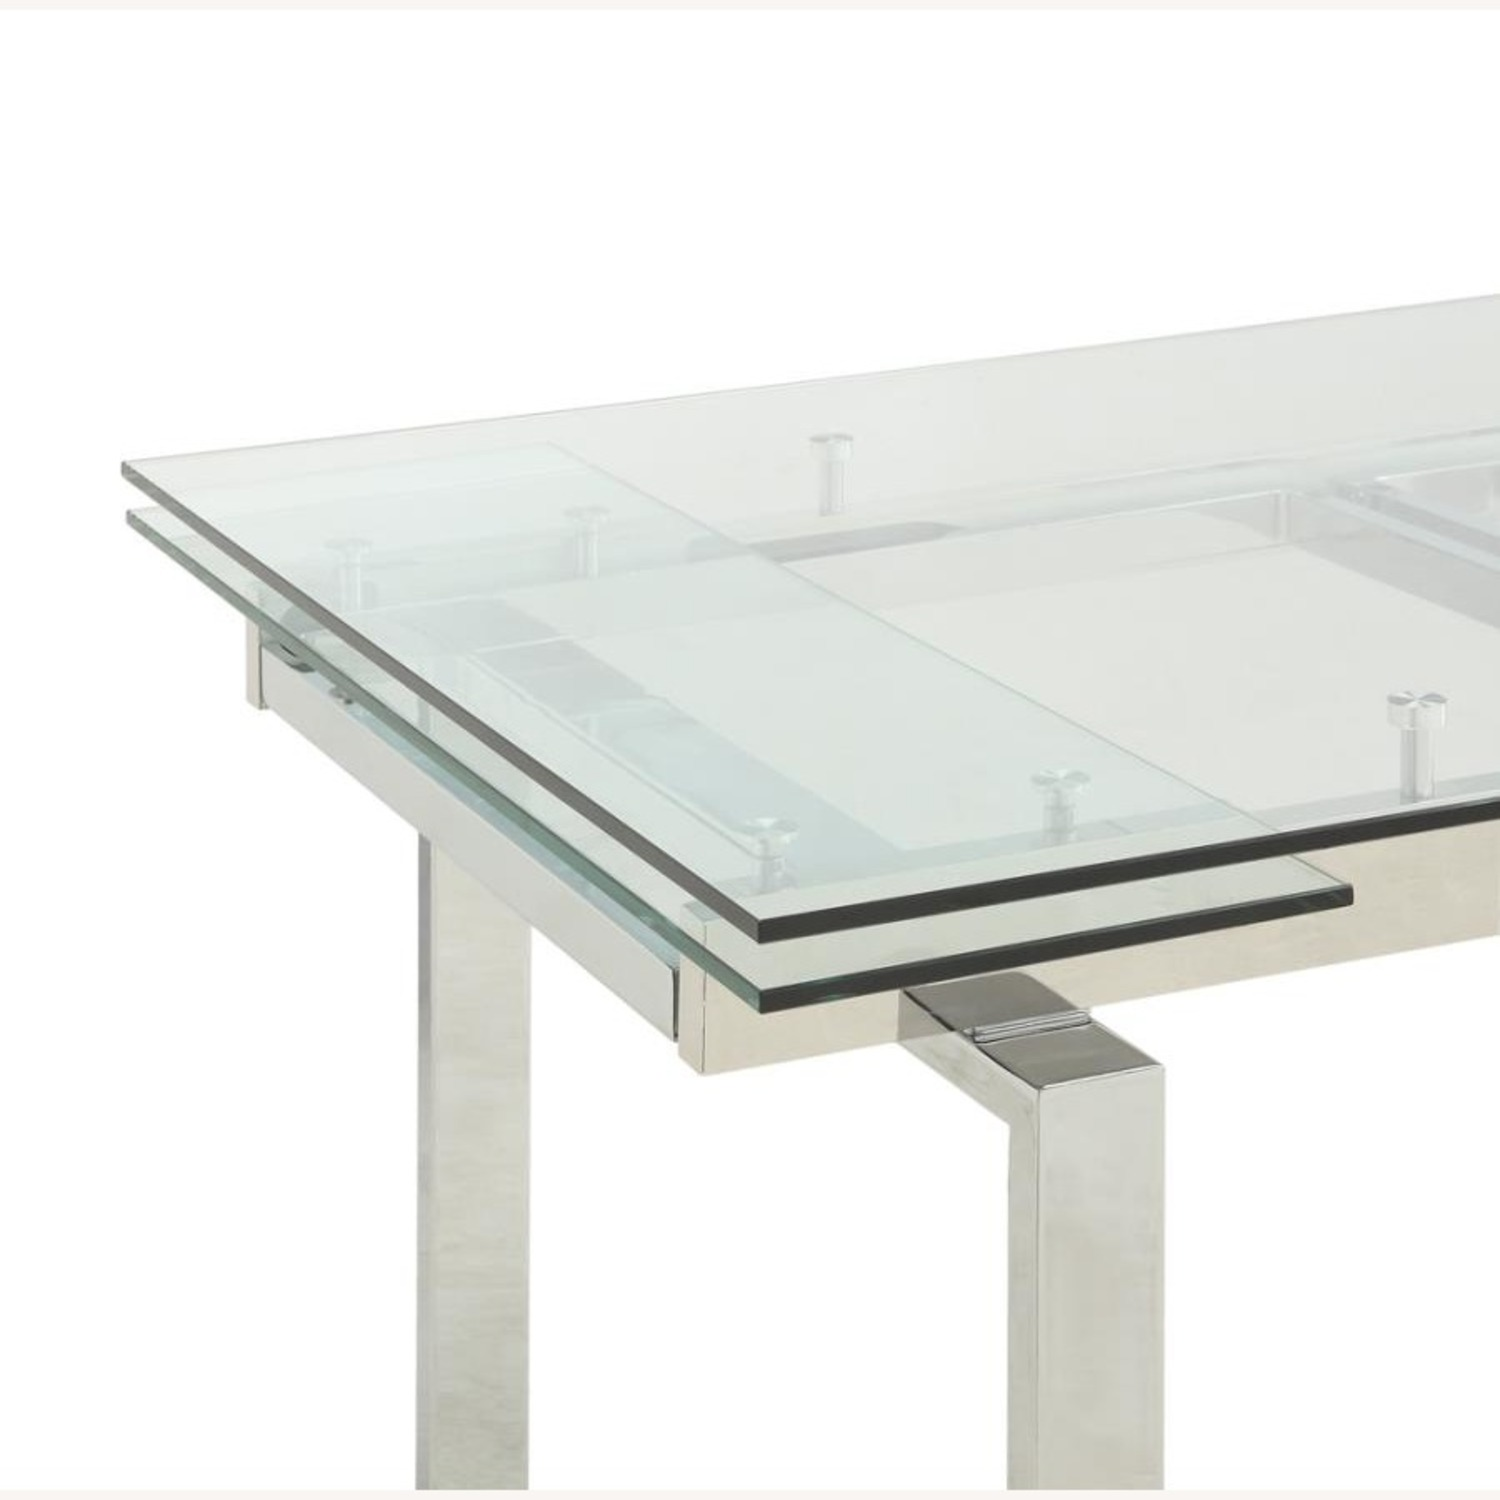 Modern Dining Table Polished In Chrome Finish - image-1